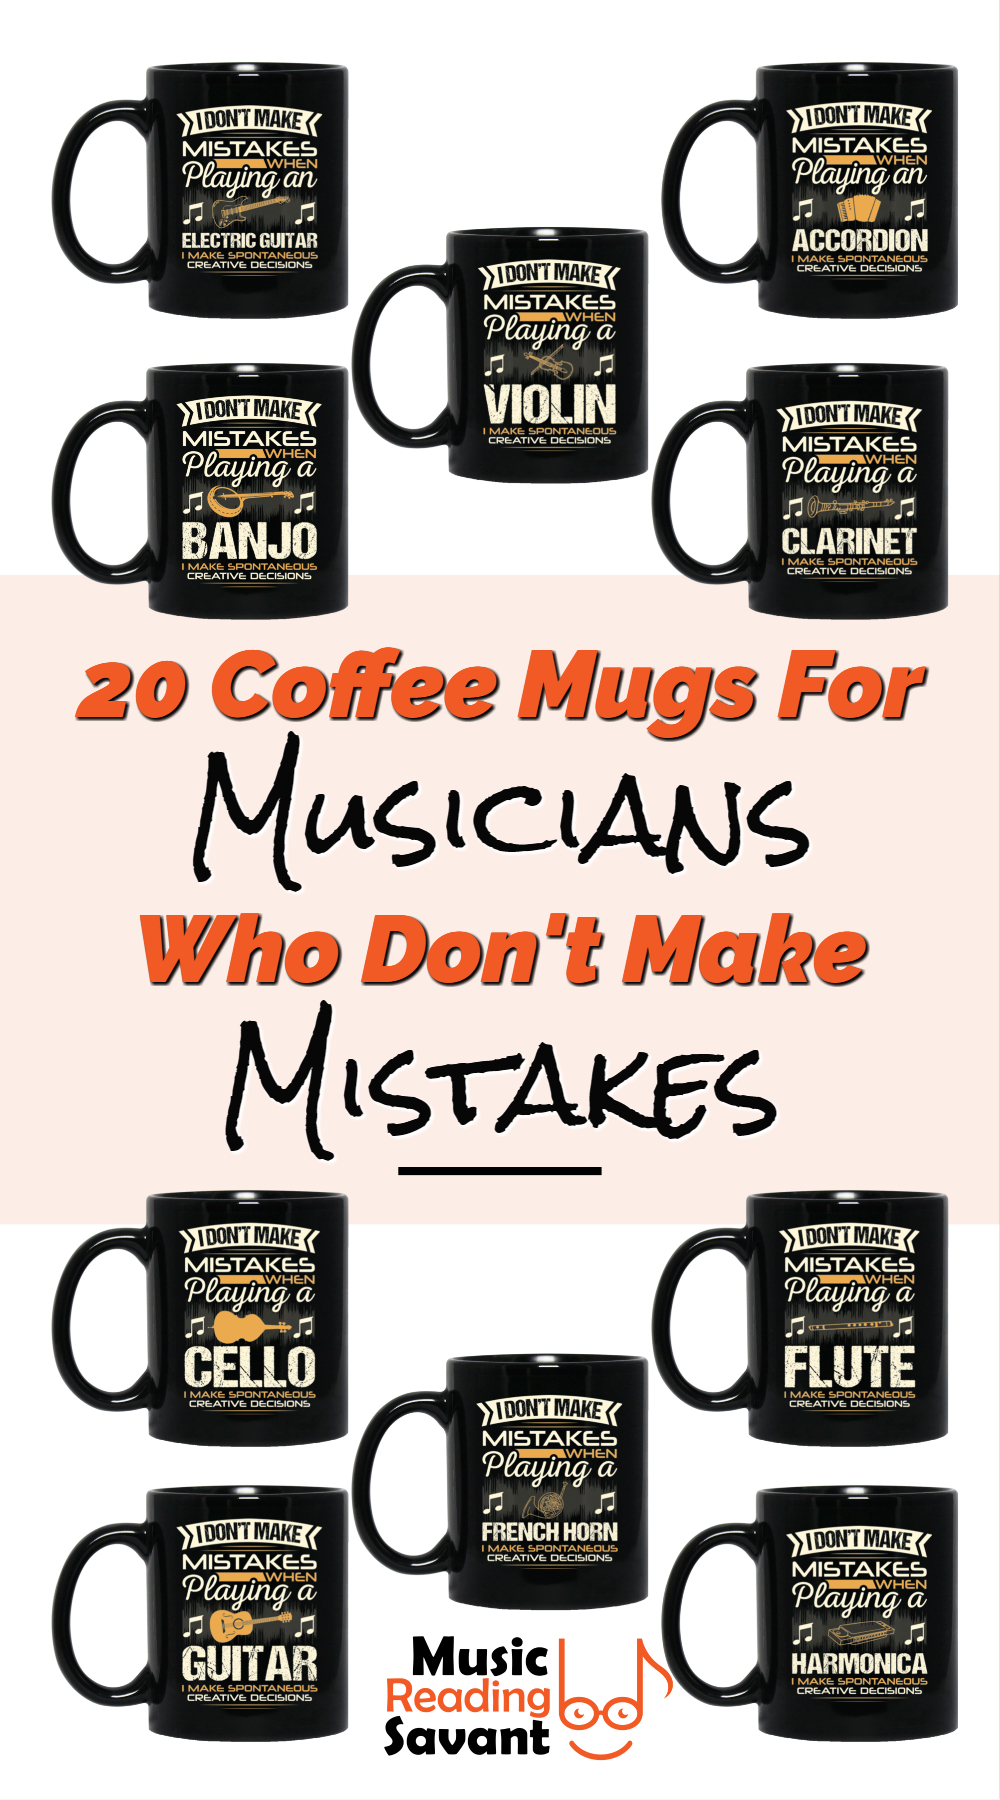 20 music coffee mugs for musicians that don't make mistakes. LOVE giving unique music gifts like this. | Music Gifts For Musicians | Unique Coffee Mugs #MusicGifts #Mugs